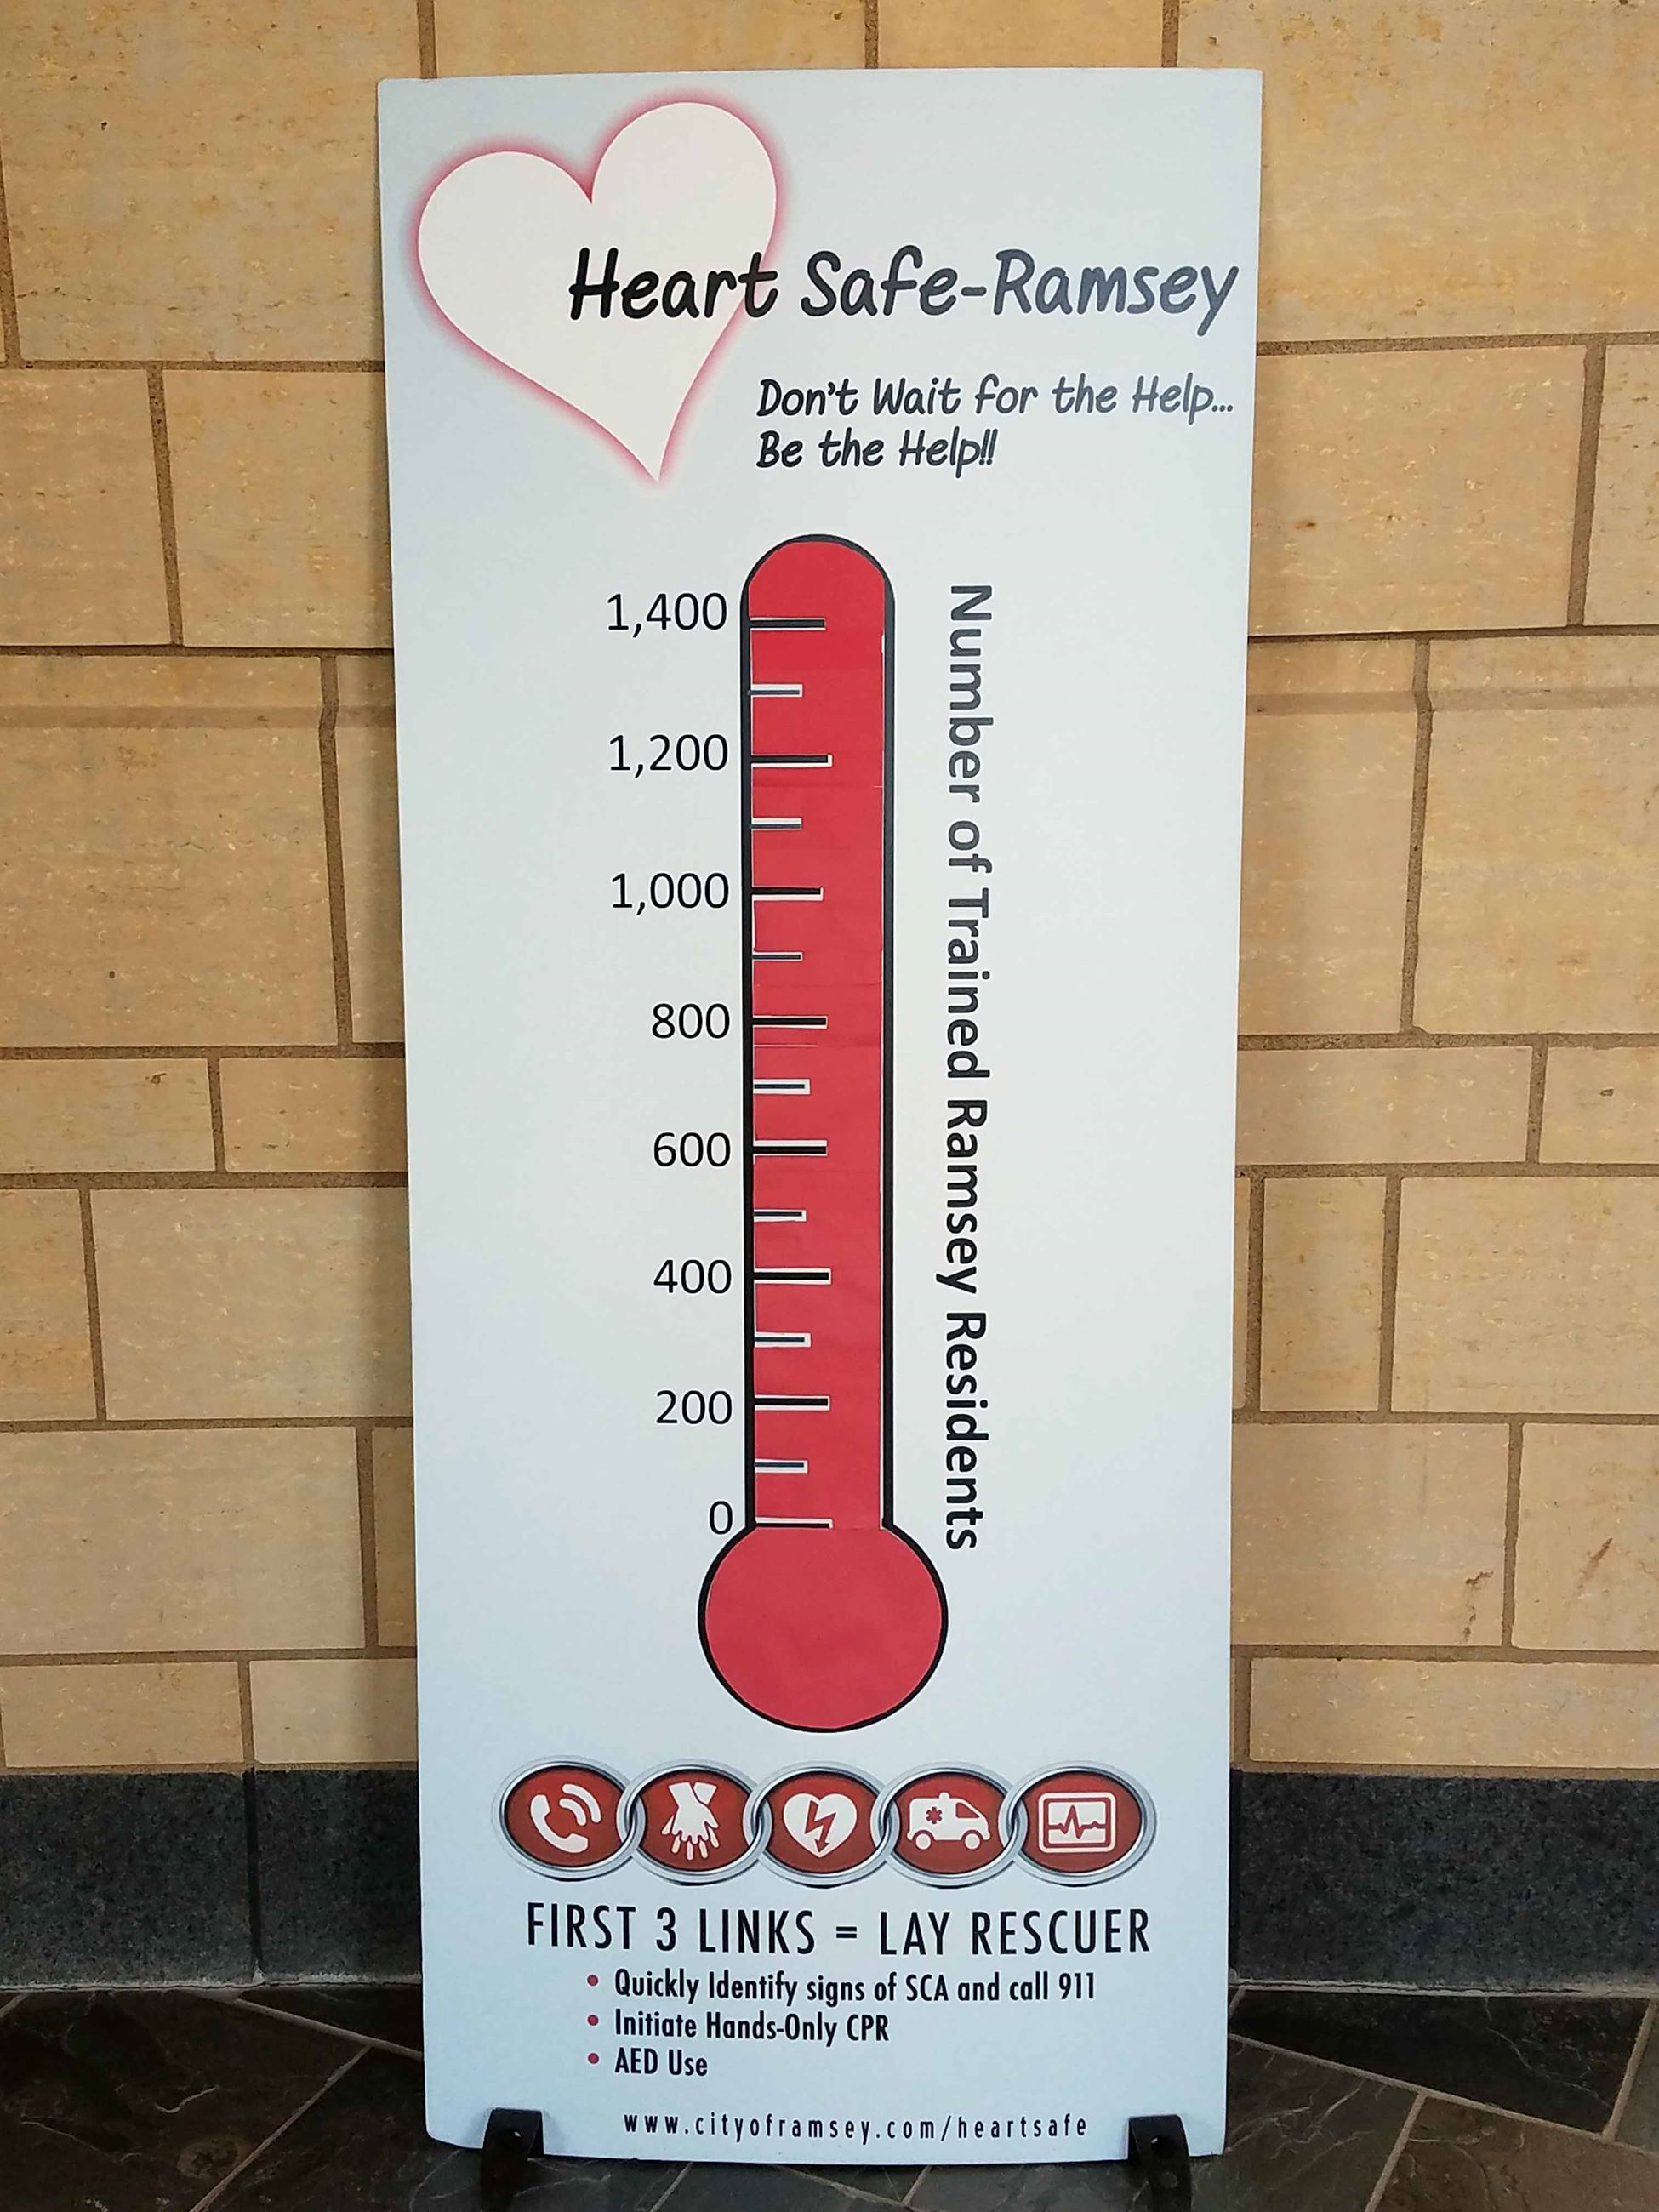 Heart Safe Ramsey 1,400 Residents Trained